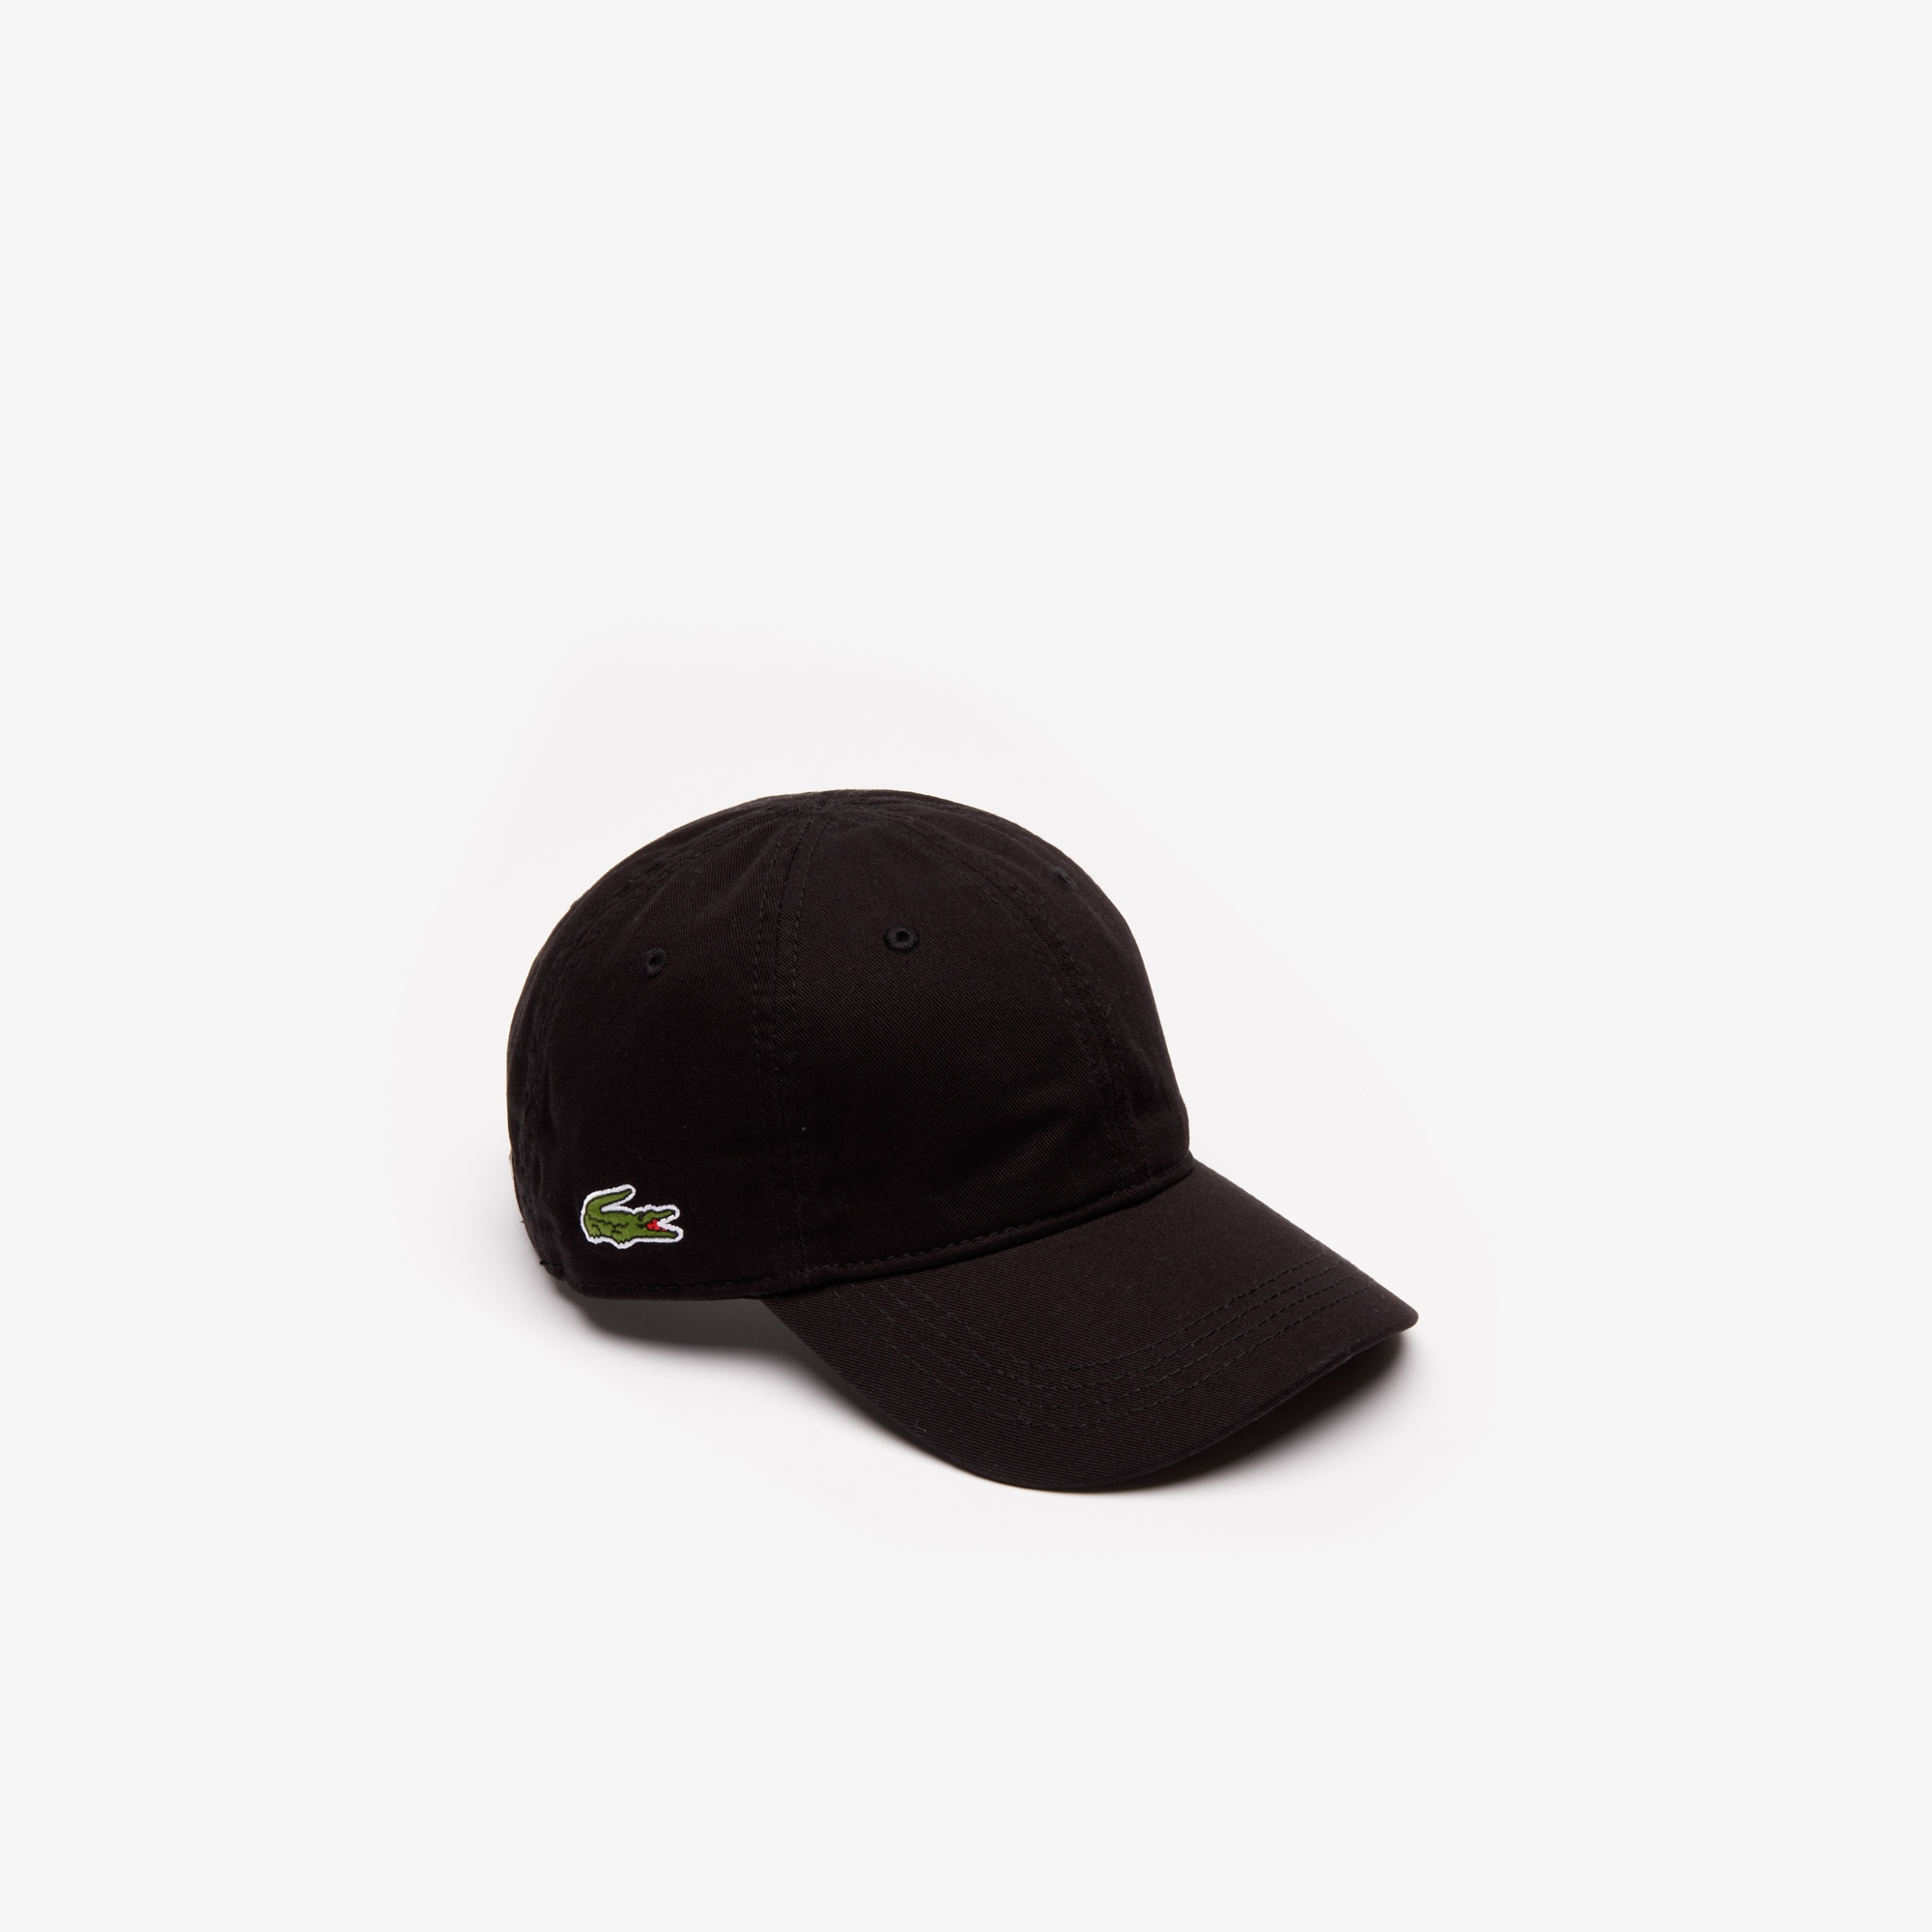 7a2b28ae Men's Caps and Hats | Men's Accessories | LACOSTE